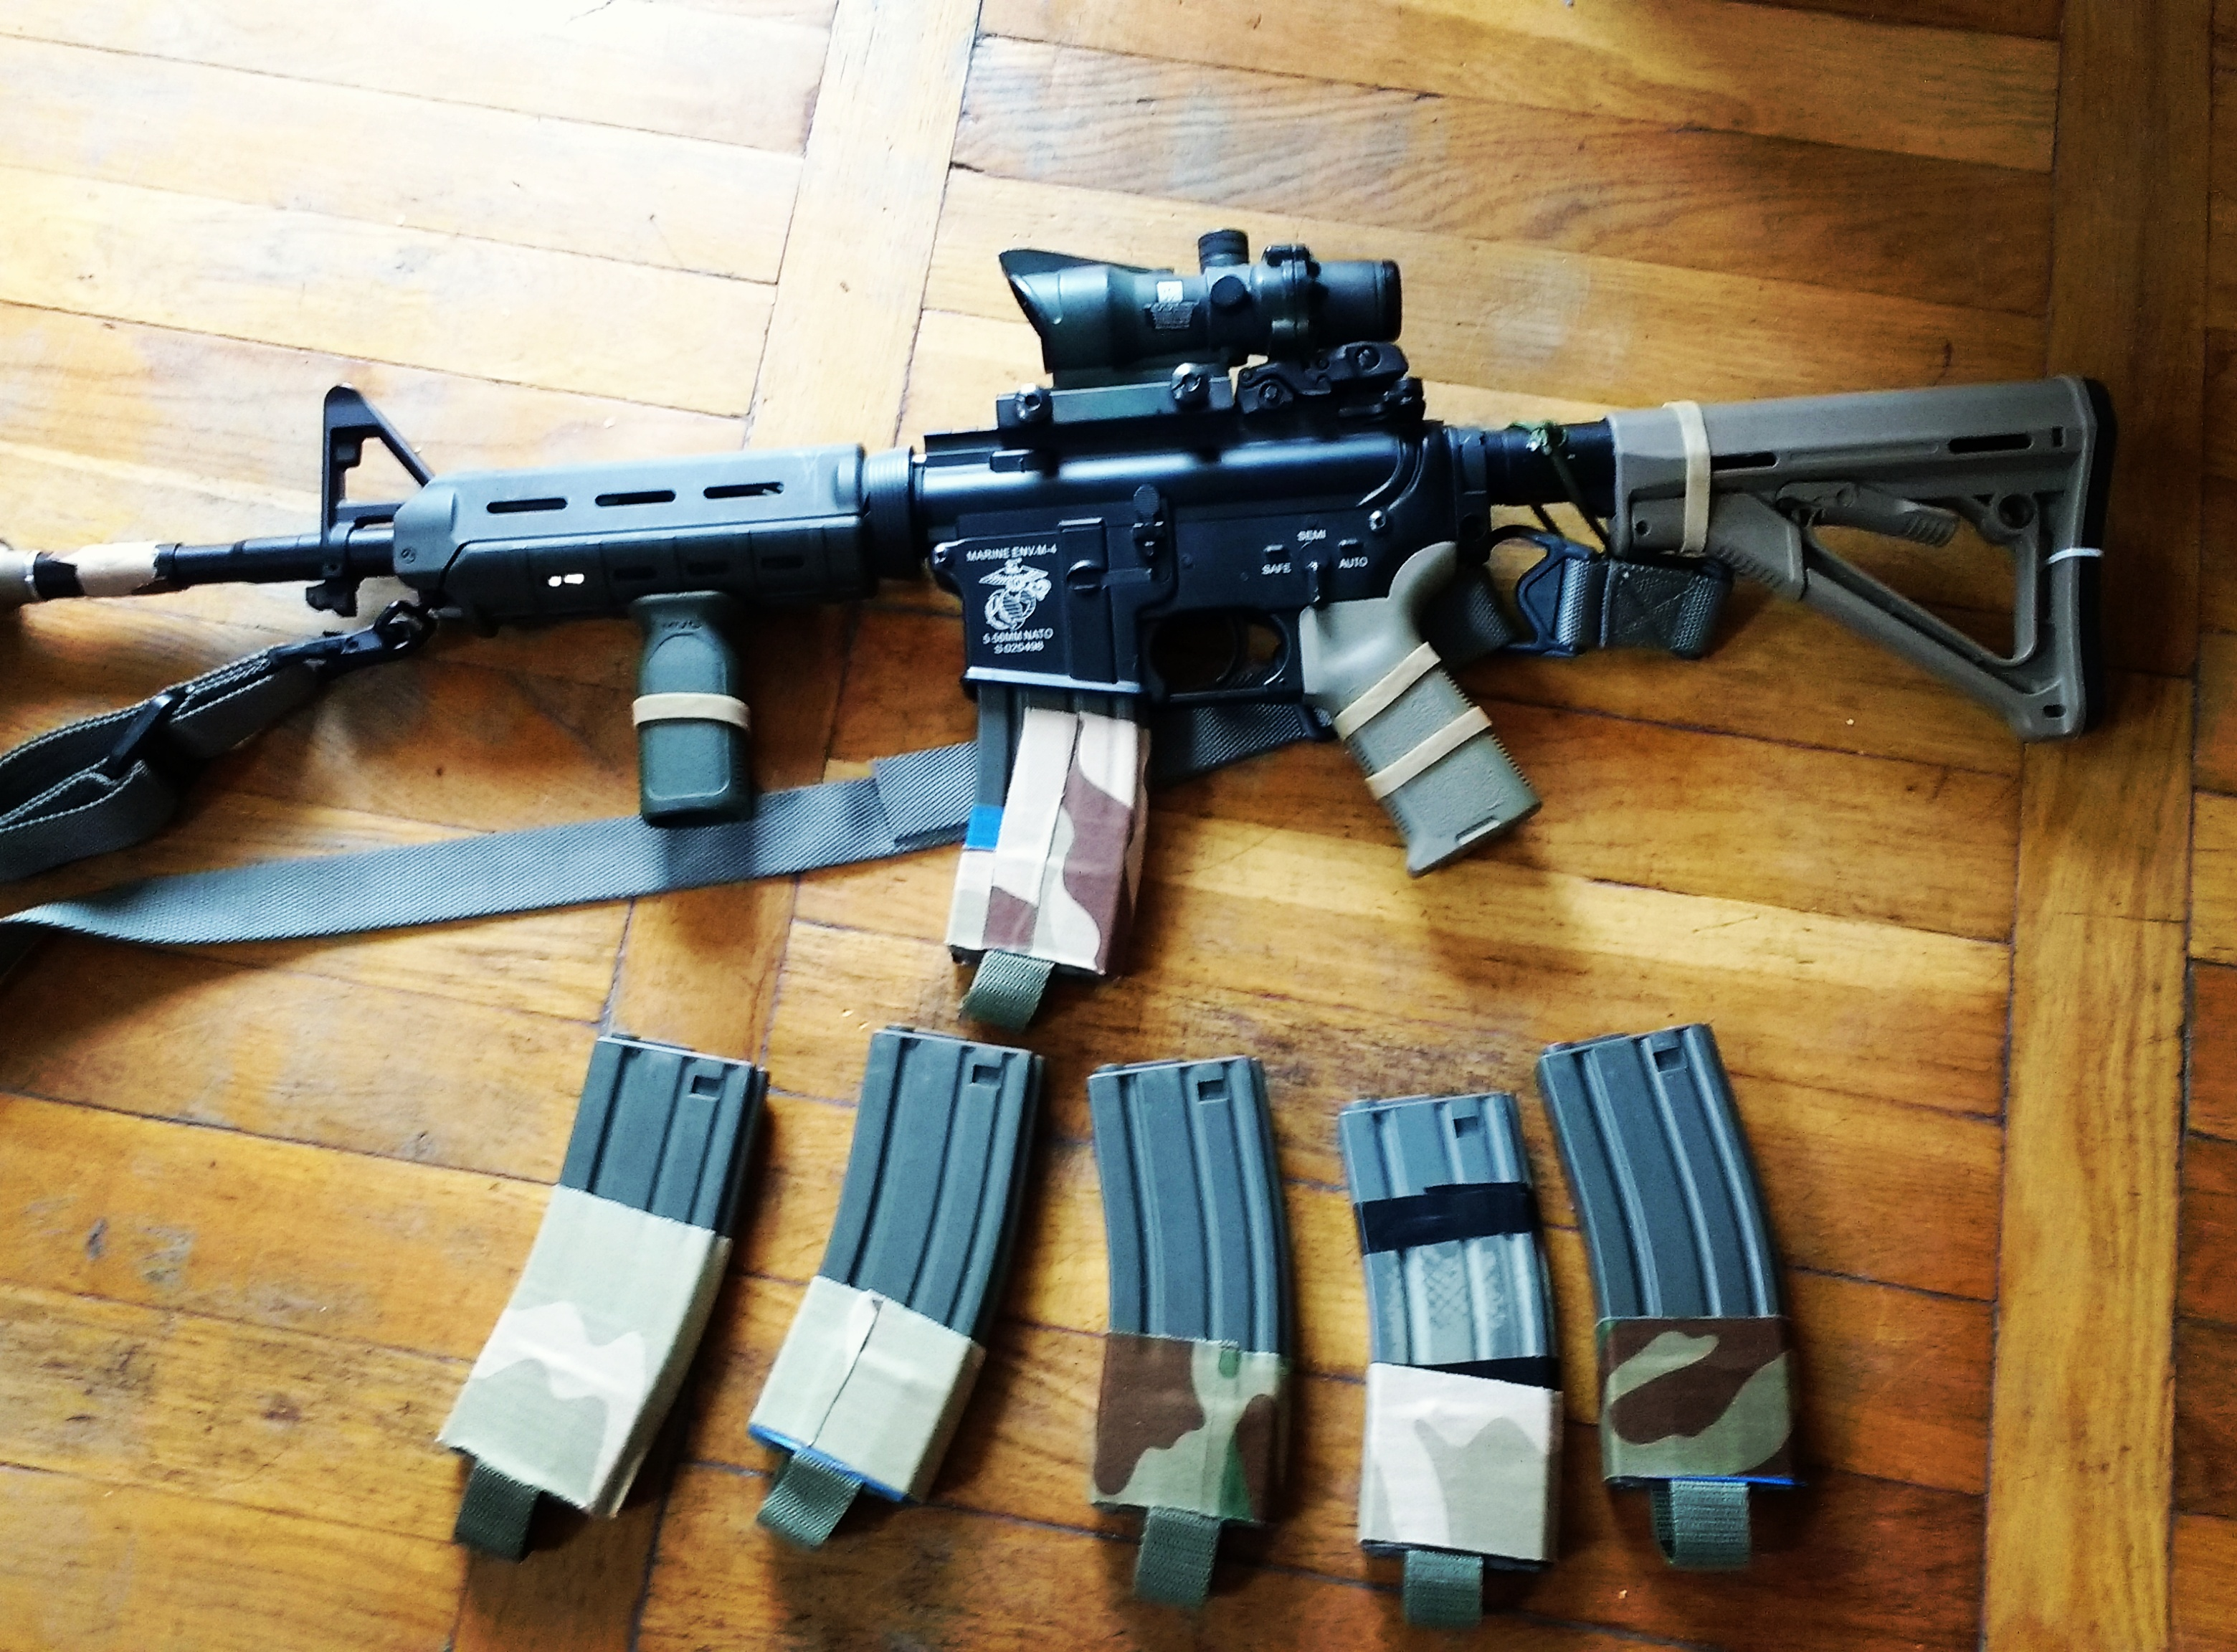 airsoft replica, magazines, scope